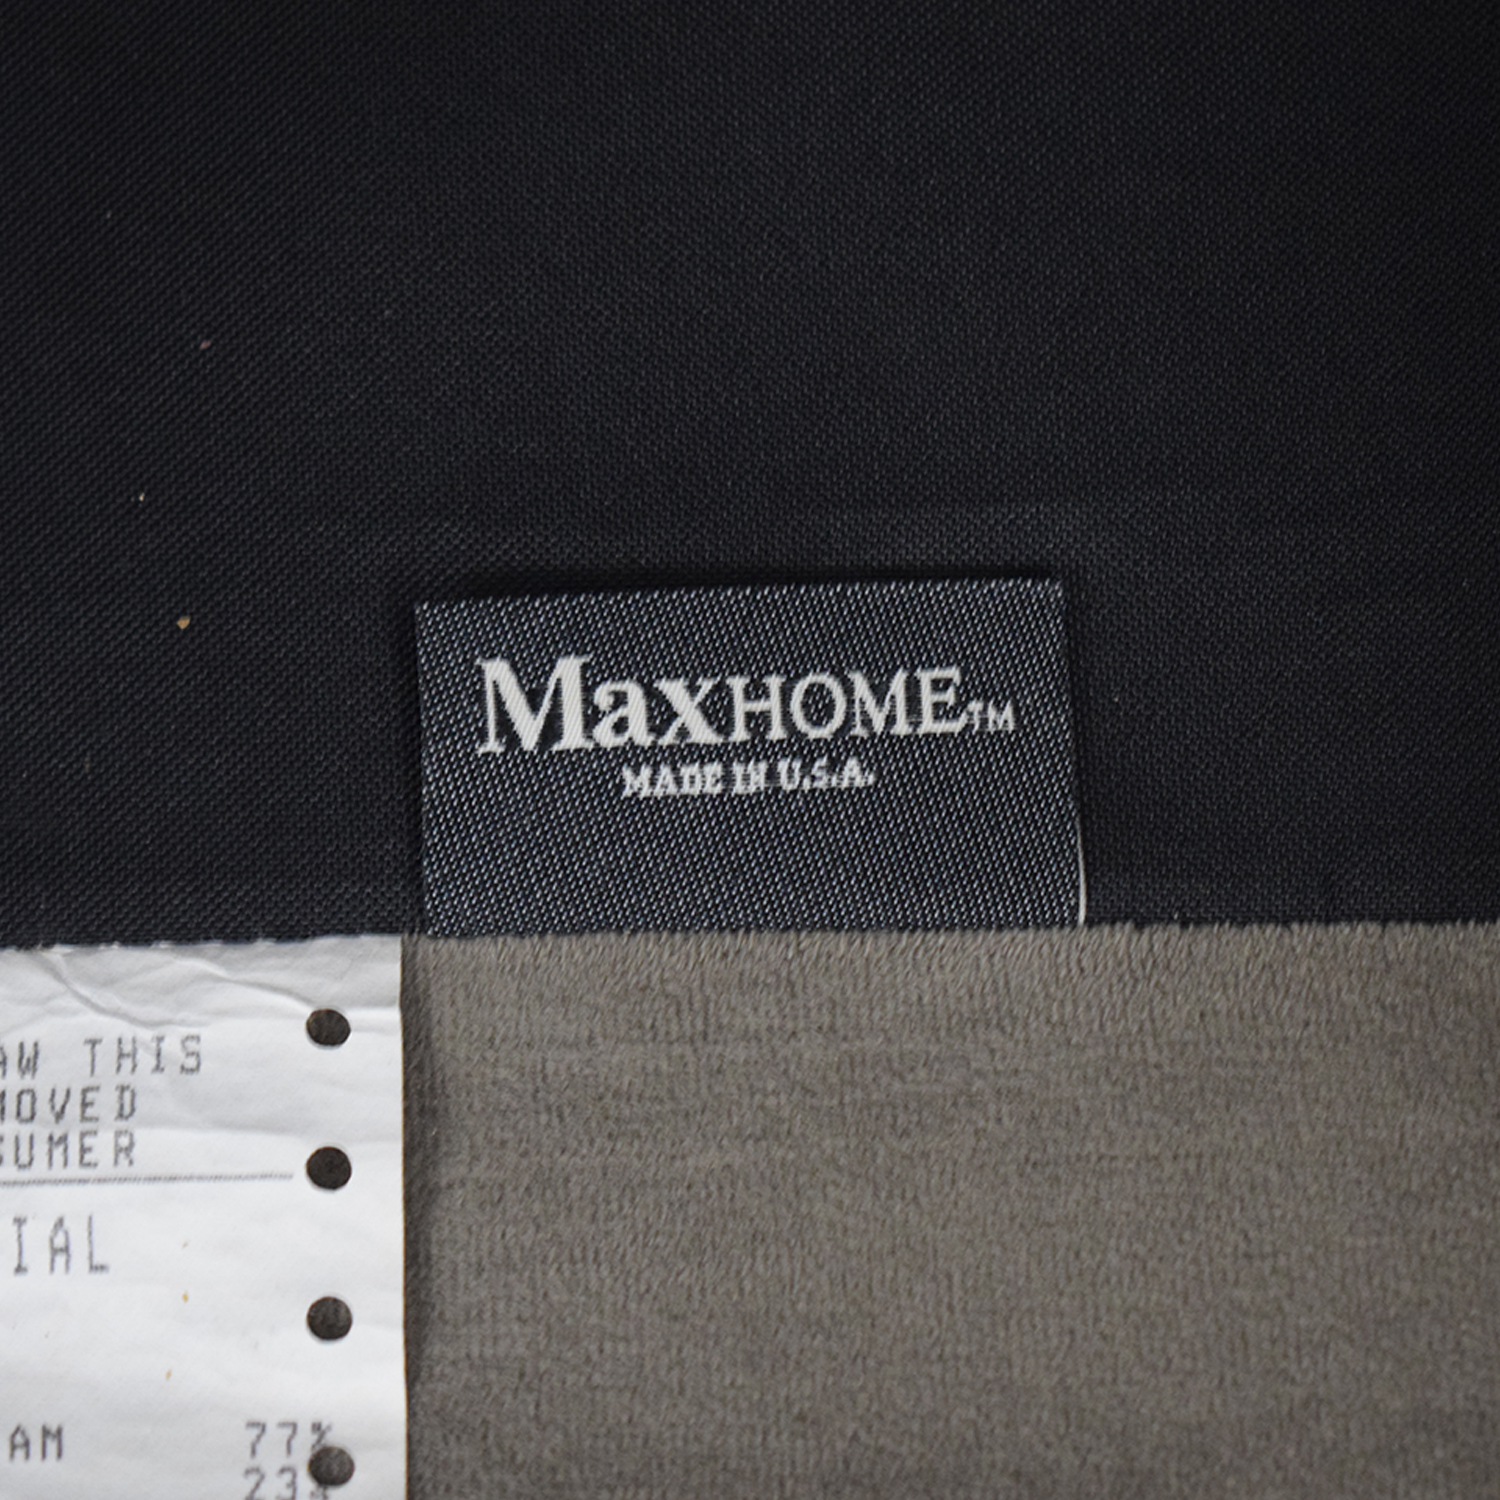 buy Max Home Max Home Modern Sofa online